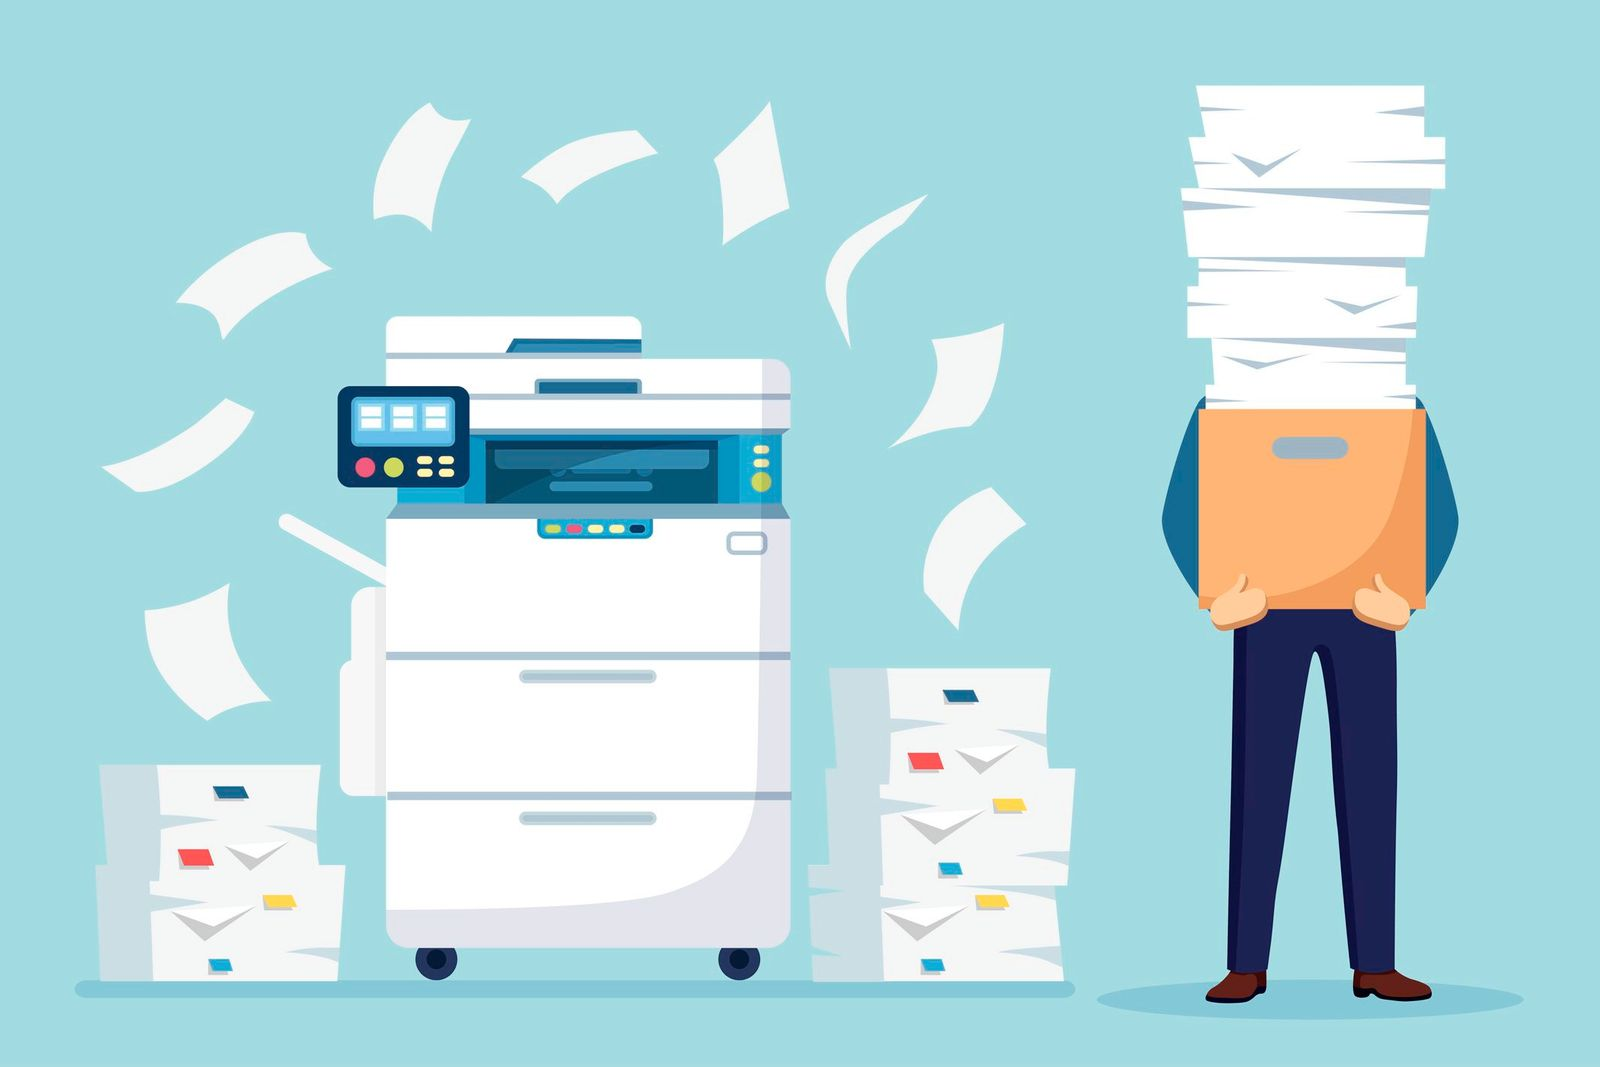 Pile of paper, busy businessman with stack of documents in carton, cardboard box. Paperwork with printer, office multifunction machine